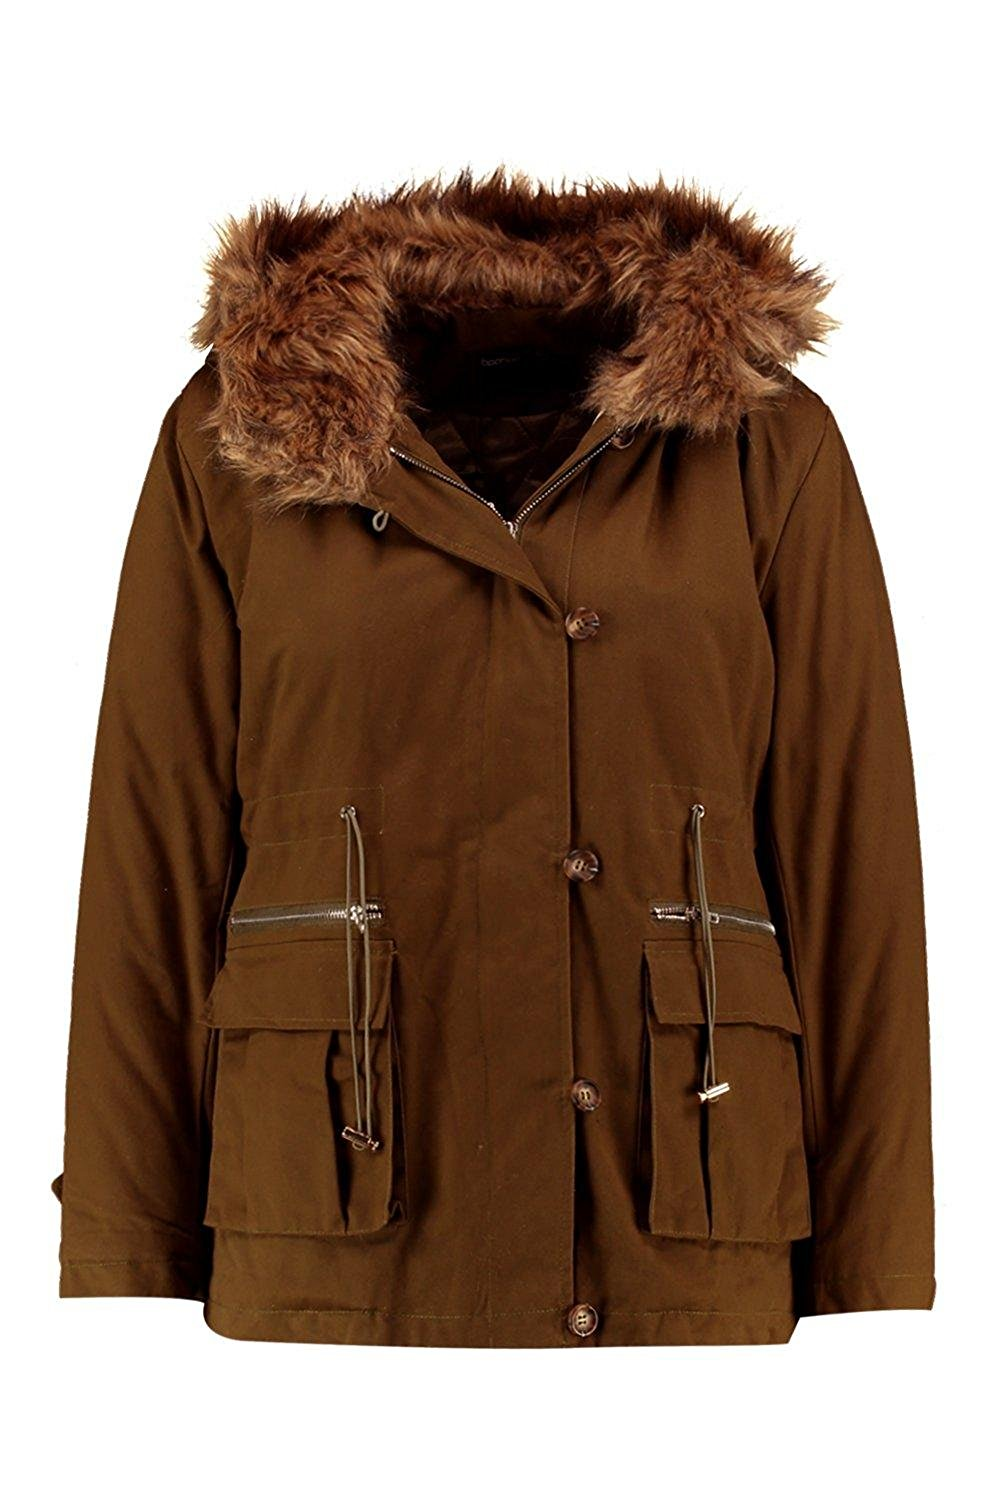 HTOOHTOOH Mens Winter Warm Hooded Solid Parka Padded Coat Quilted Jacket Outwear